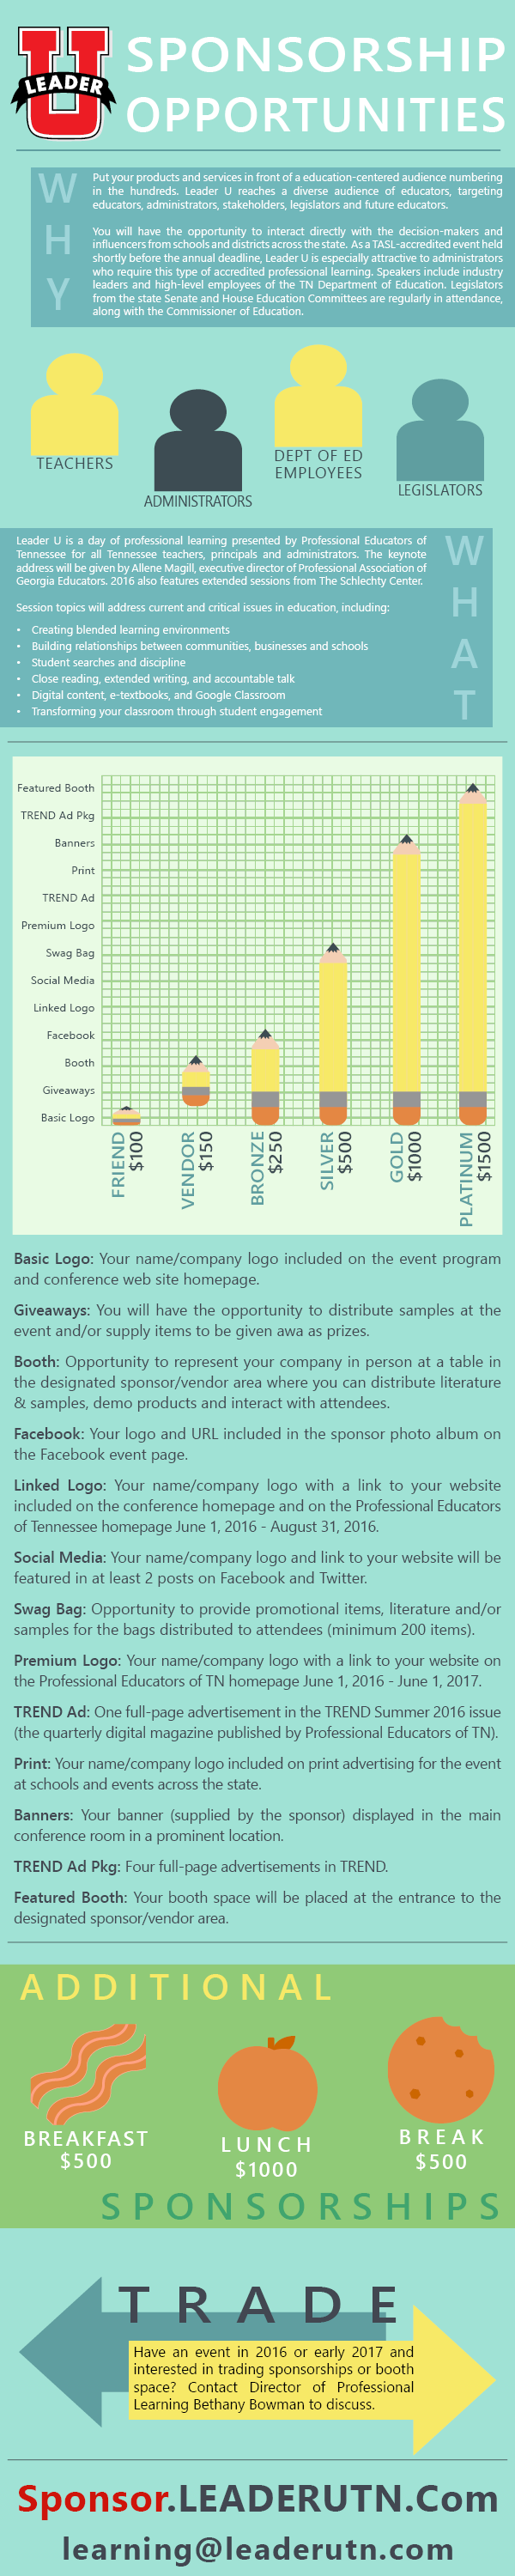 Leader U Sponsorship Infographic